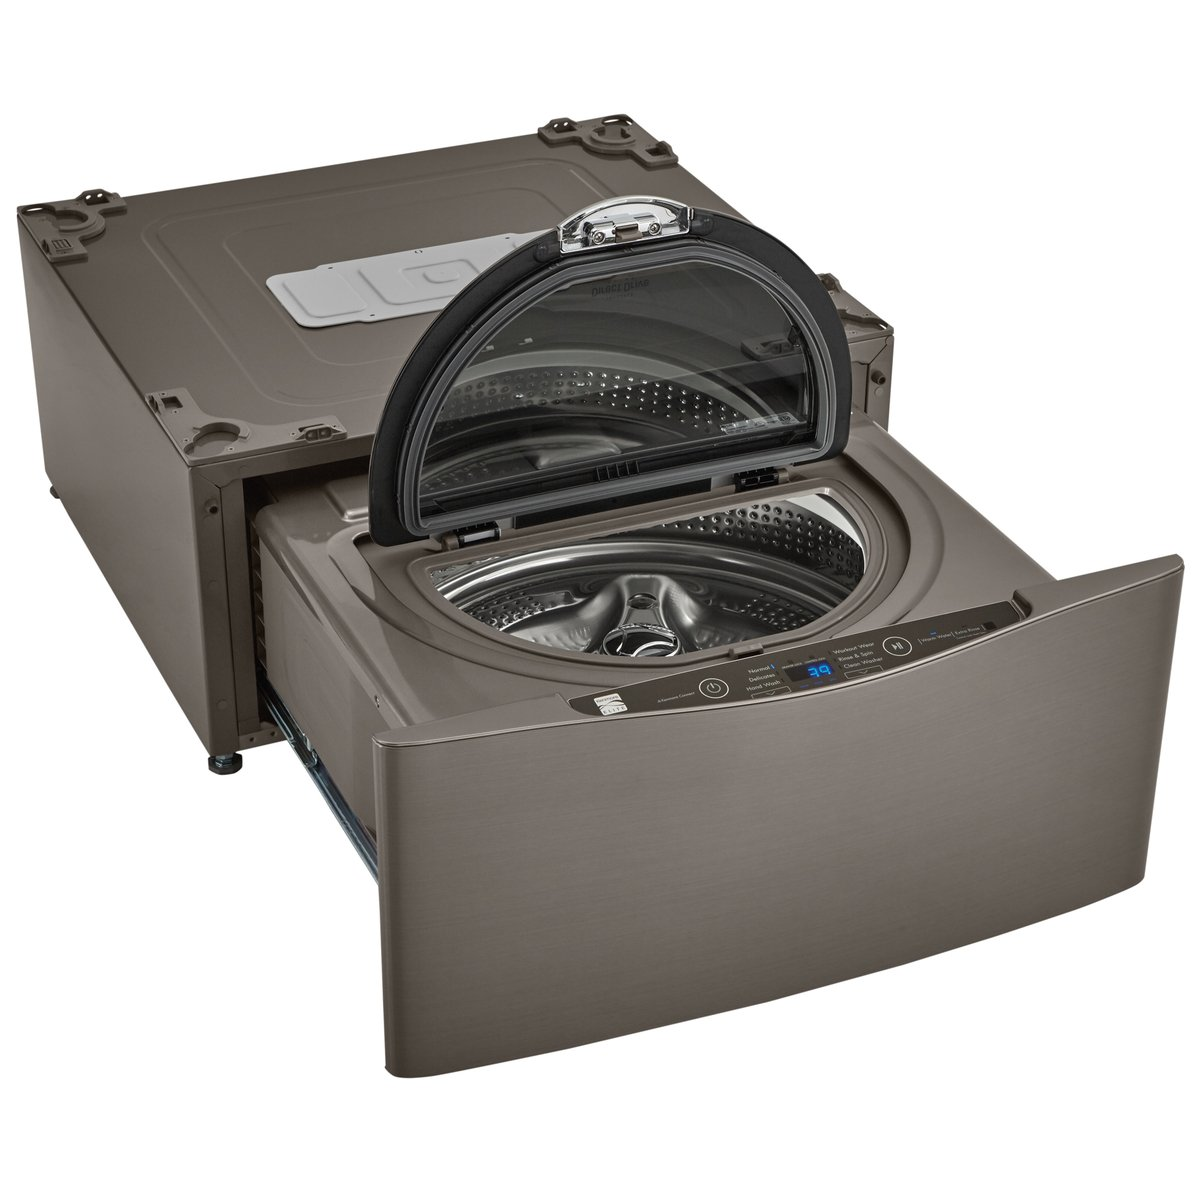 Kenmore Elite 51993 29' Wide Pedestal Washer In Metallic Silver, Includes Delivery And Hookup